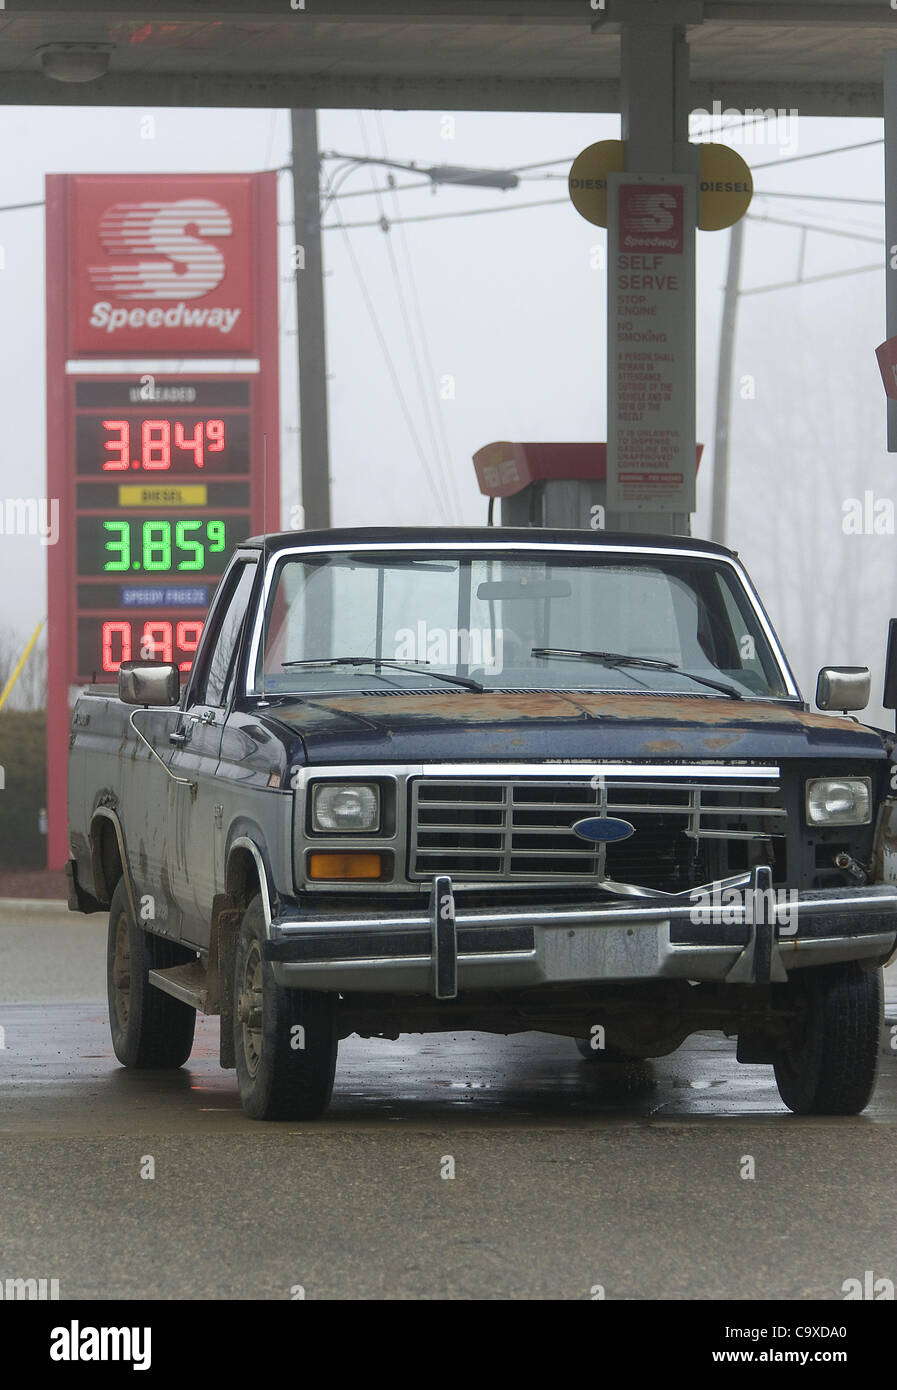 Feb. 29, 2012 - Whitmore Lake, Michigan, U.S - An old Ford truck ...